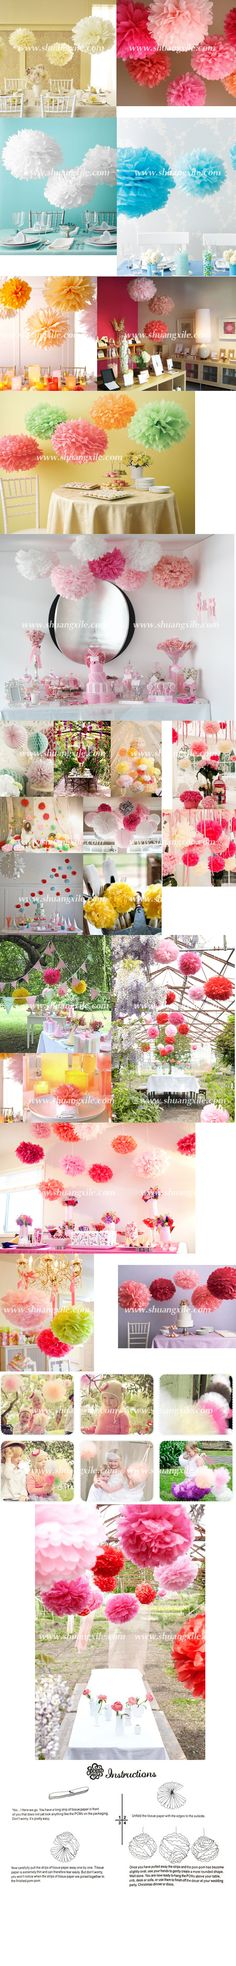 Paper Pom Pom Decor - Wedding Decorations - Wedding Accessories